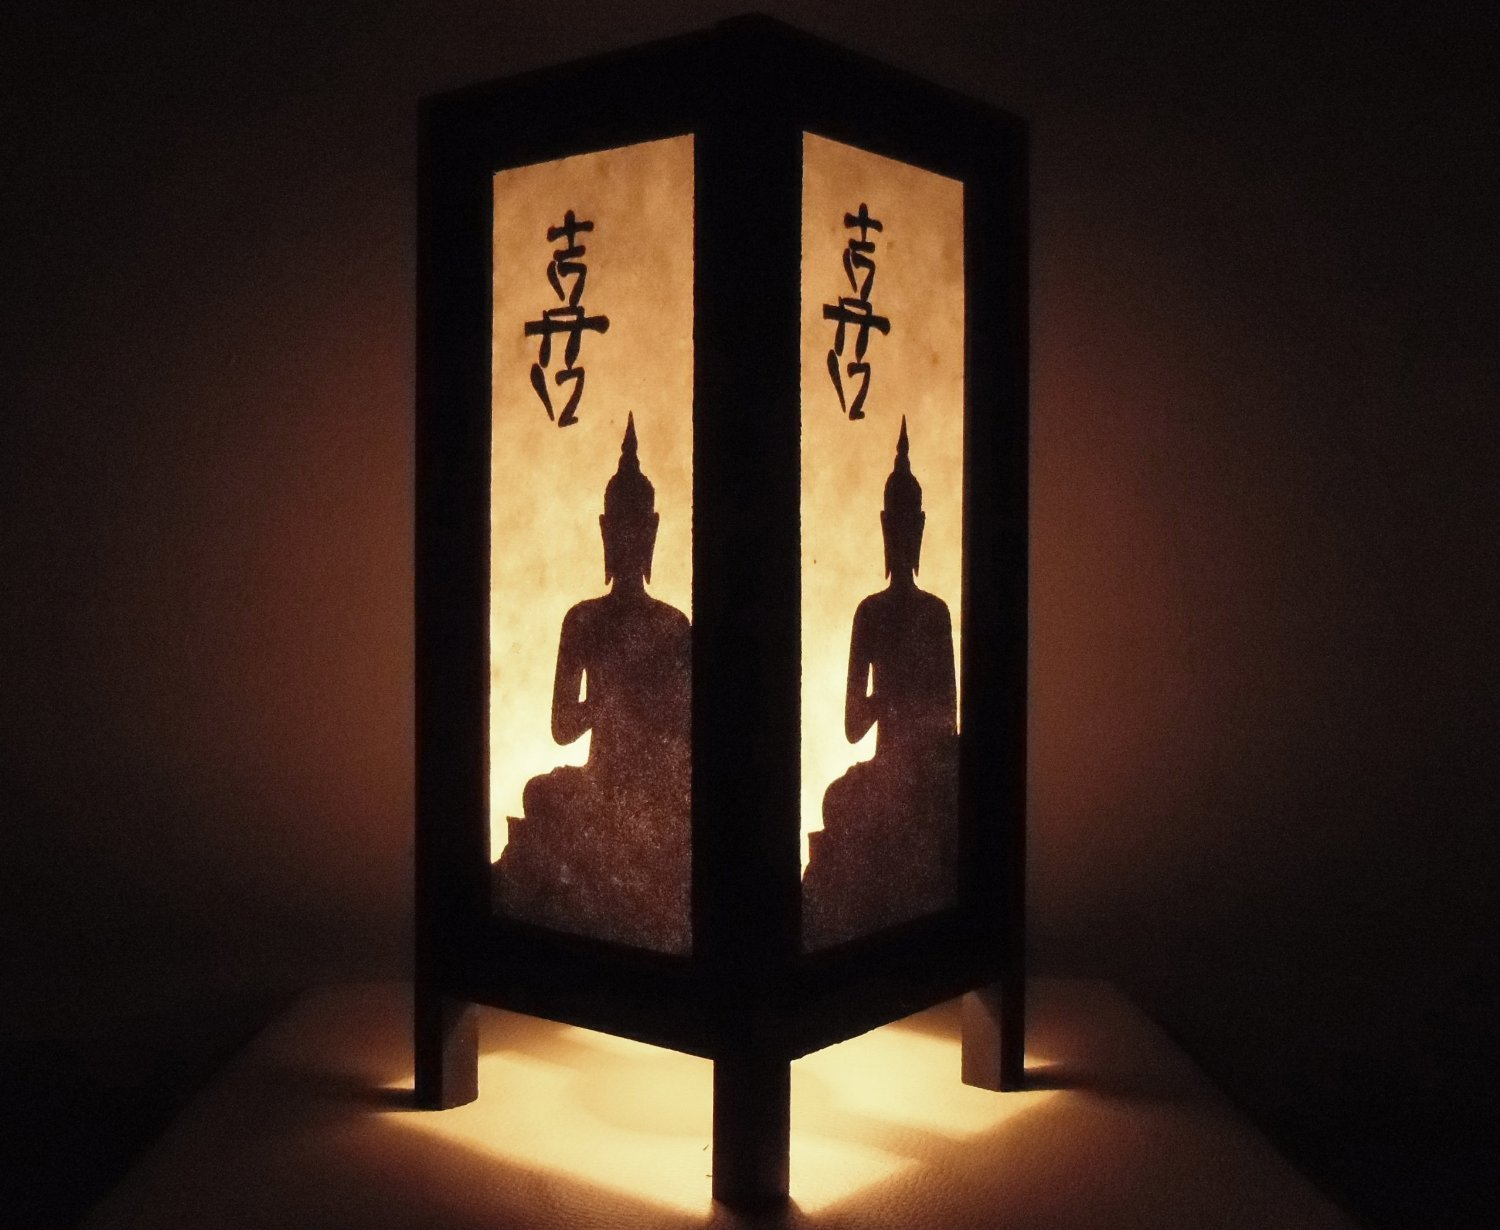 BUDDHA Bedside Table Light or Floor Wood Paper Lamp Shades Modern Vintage Handmade Asian Oriental Wood